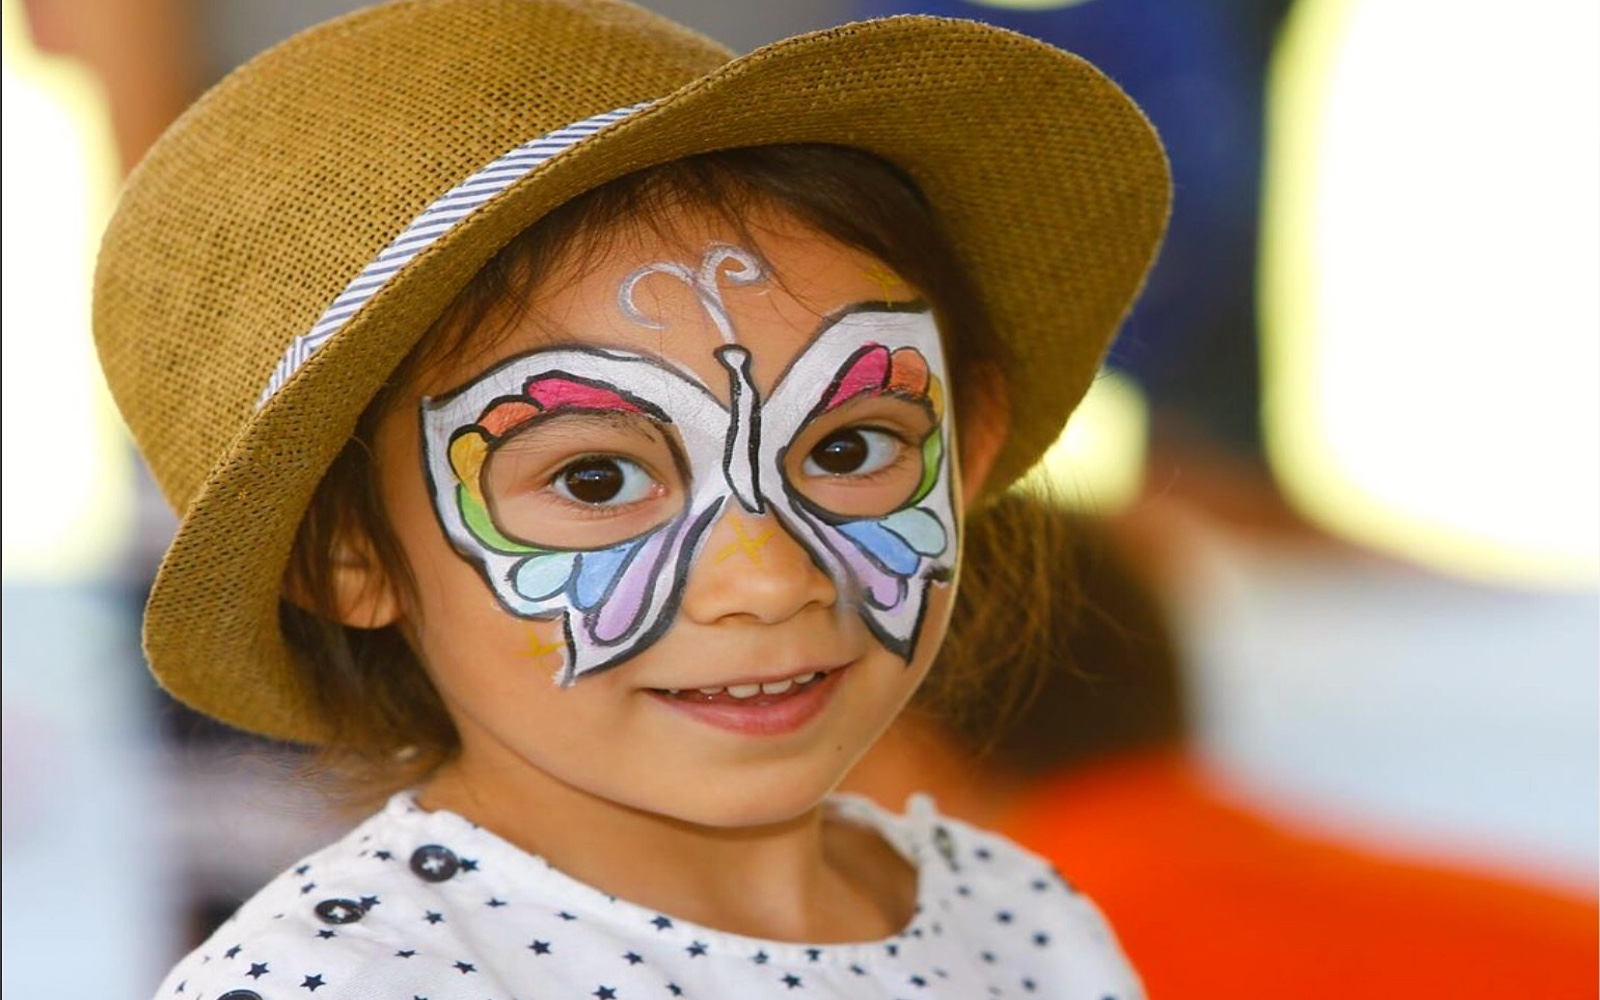 A girl has her face painted at the Vancouver International Children's Festival